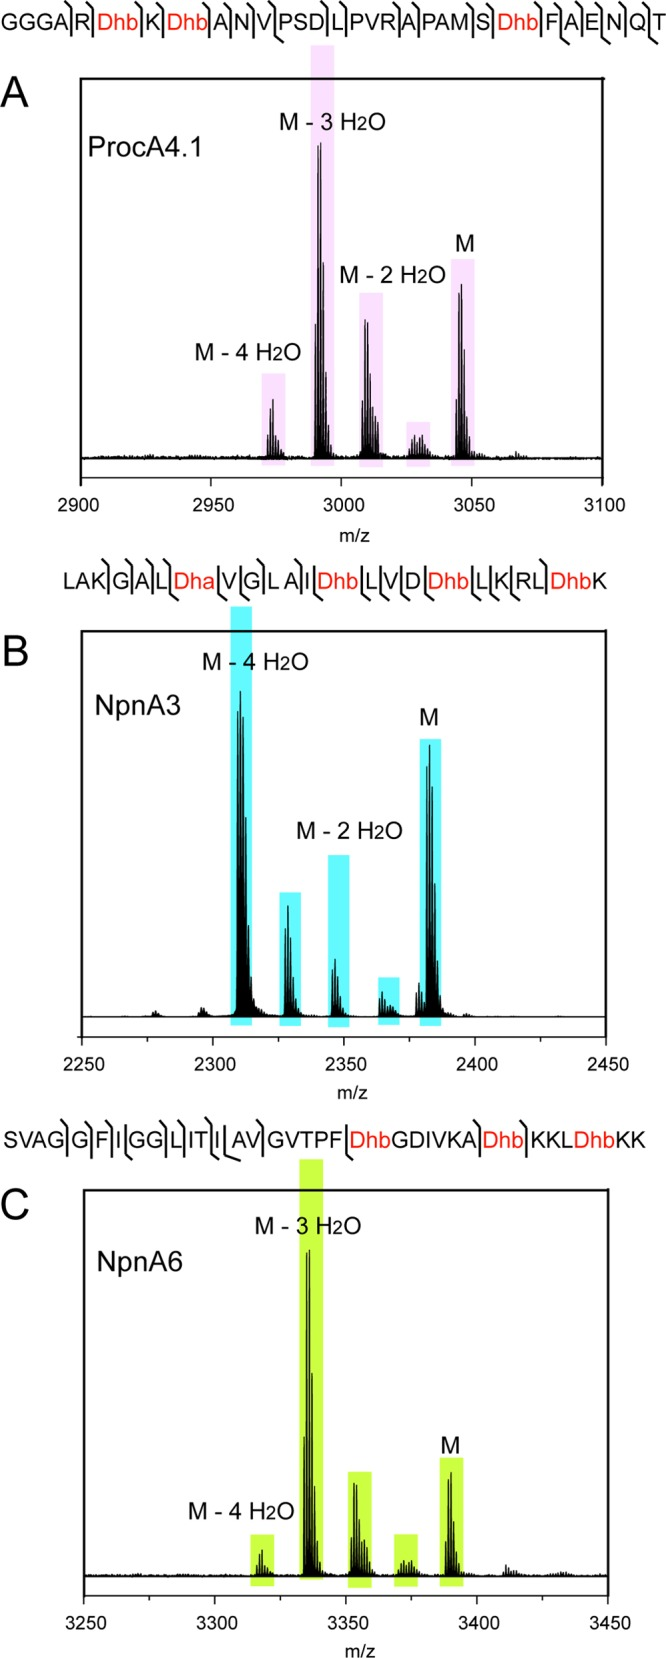 Coexpression studies of Cys-lacking peptides with LanMs. (A) MALDI-ToF MS analysis of ProcA4.1 that was obtained by coexpression with ProcM. Also shown is the sequence of the ProcA4.1 core (obtained by TEV cleavage of a ProcA4.1 mutant containing an engineered TEV cleavage site just before the predicted core sequence) and the MS/MS fragmentation pattern for the 3-fold dehydrated species. (B) MALDI-ToF MS analysis of NpnA3 that was obtained by coexpression with NpnM in E. coli . Also shown is the sequence of endoproteinase Glu-C cleaved NpnA3 and the MS/MS fragmentation pattern for the 4-fold dehydrated species. (C) MALDI-ToF MS analysis of NpnA6 obtained similarly to that for NpnA3 in panel B. Also presented is the sequence and MS/MS fragmentation pattern for 3-fold dehydrated NpnA6. The MS/MS data for 3-fold dehydrated ProcA4.1, 4-fold dehydrated NpnA3, and 3-fold dehydrated NpnA6 are shown in Supporting Information Figures 24–26 , respectively.